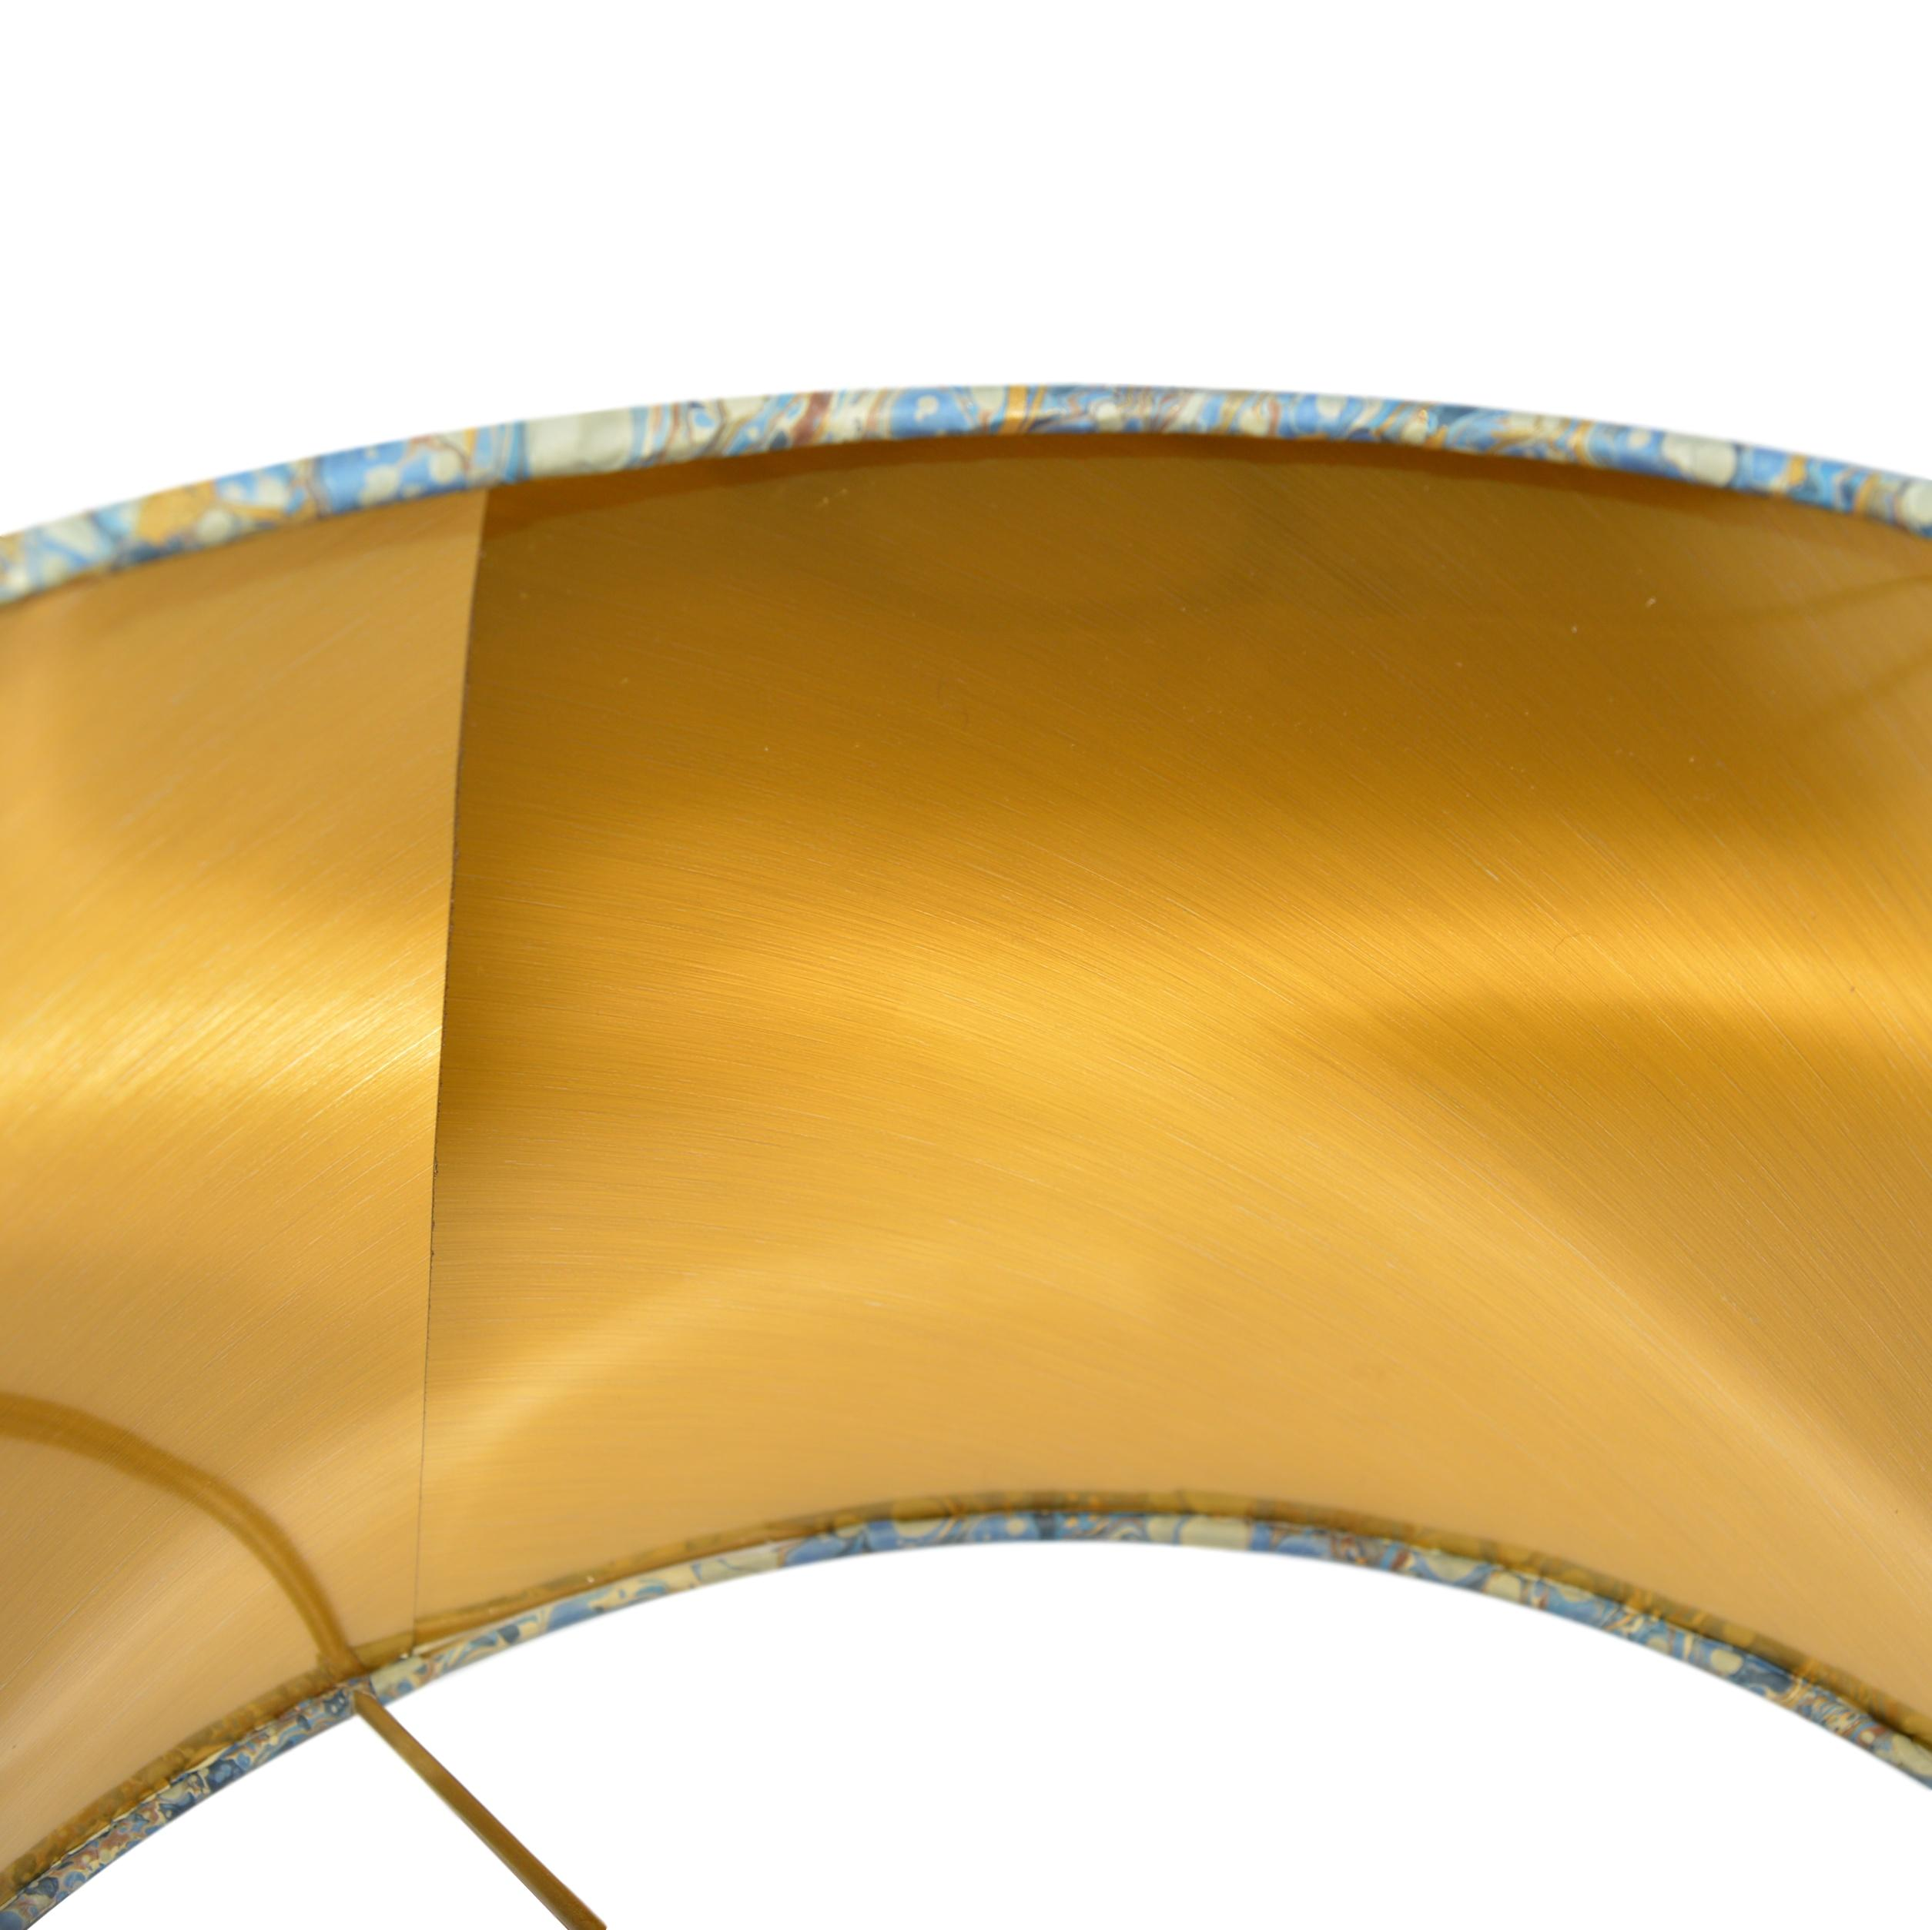 Munro and Kerr blue swirl marbled paper for a handmade tapered drum lampshade with gold lining